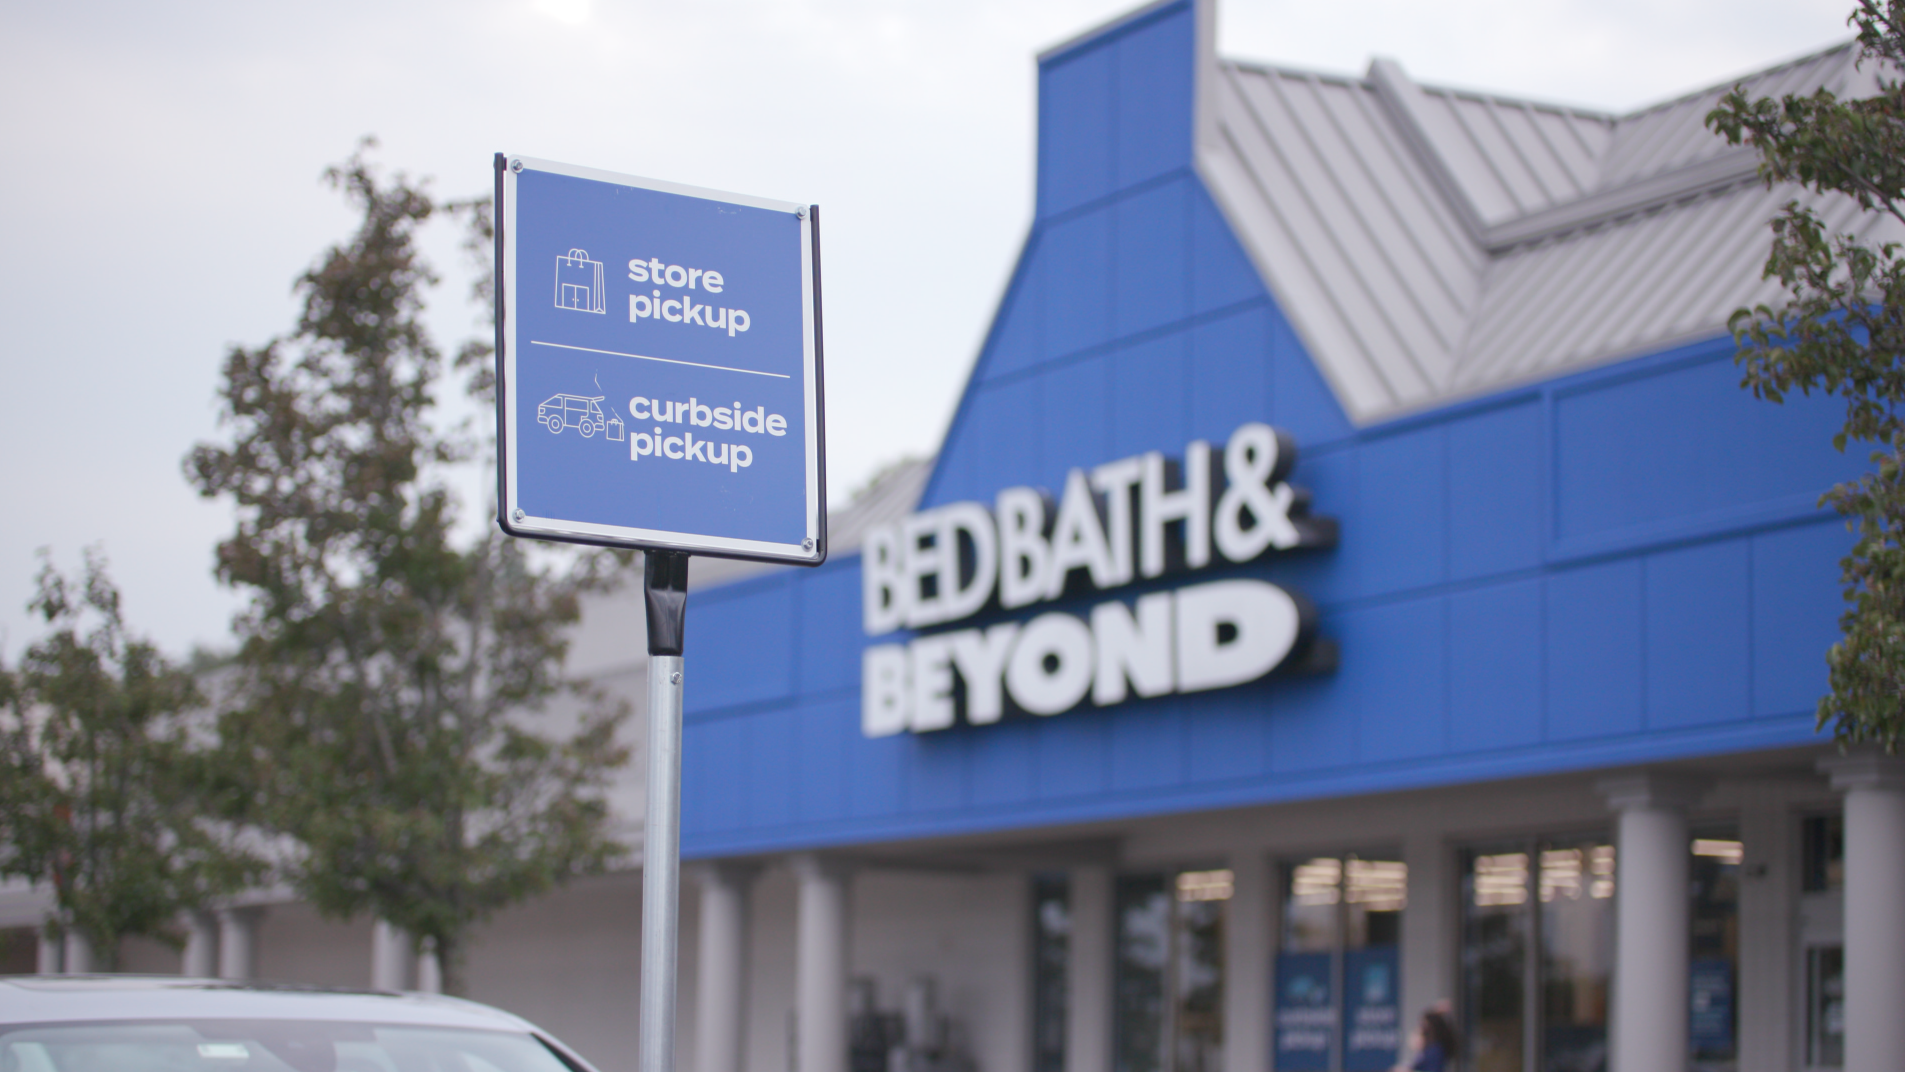 Bed Bath & Beyond adds Roadie same-day delivery service